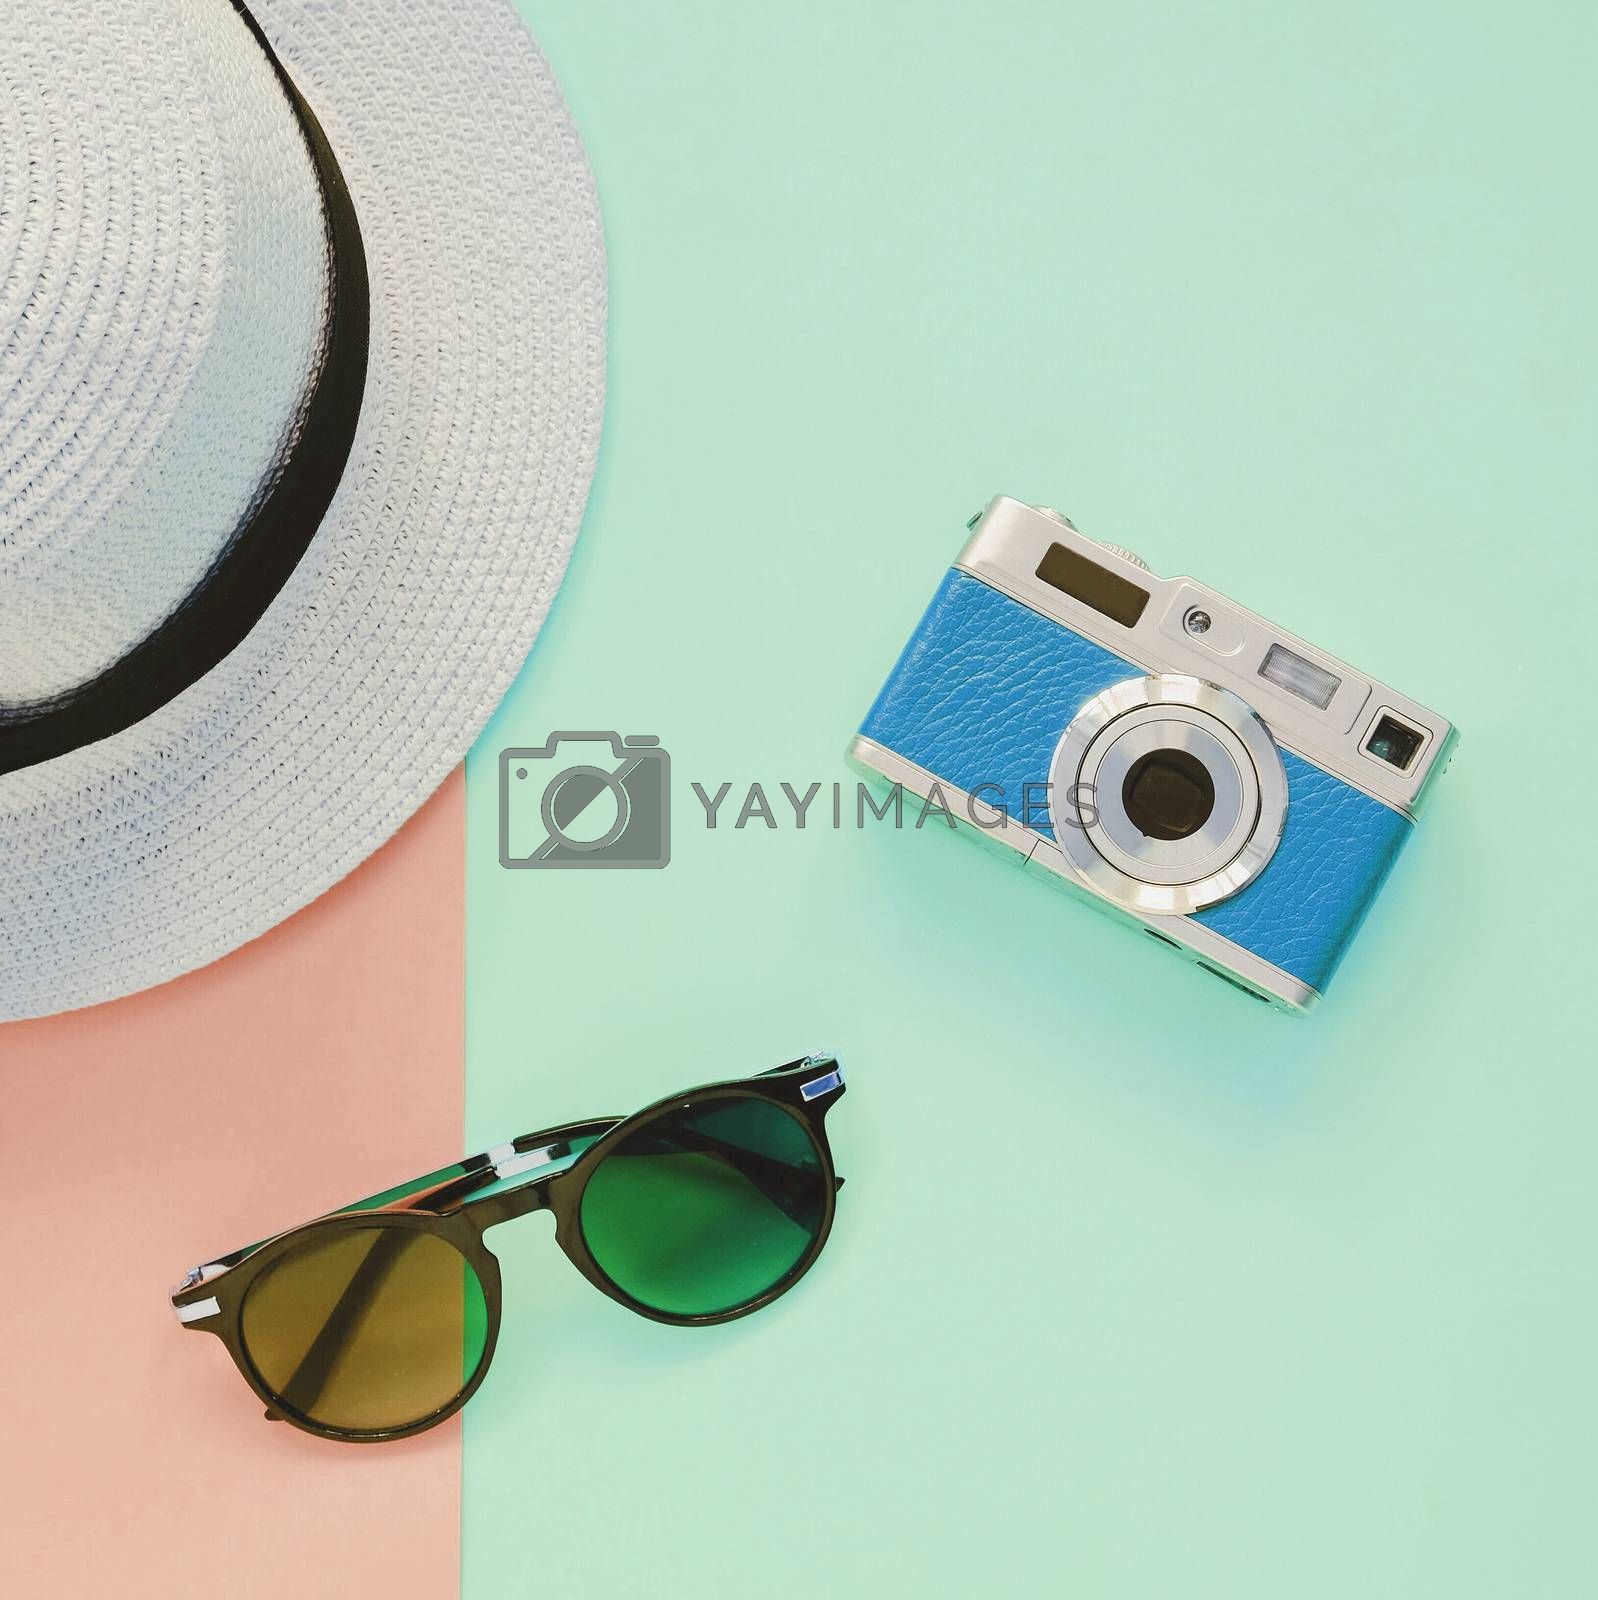 Royalty free image of Creative Flat lay fashion style with camera, sunglasses and pana by nuchylee